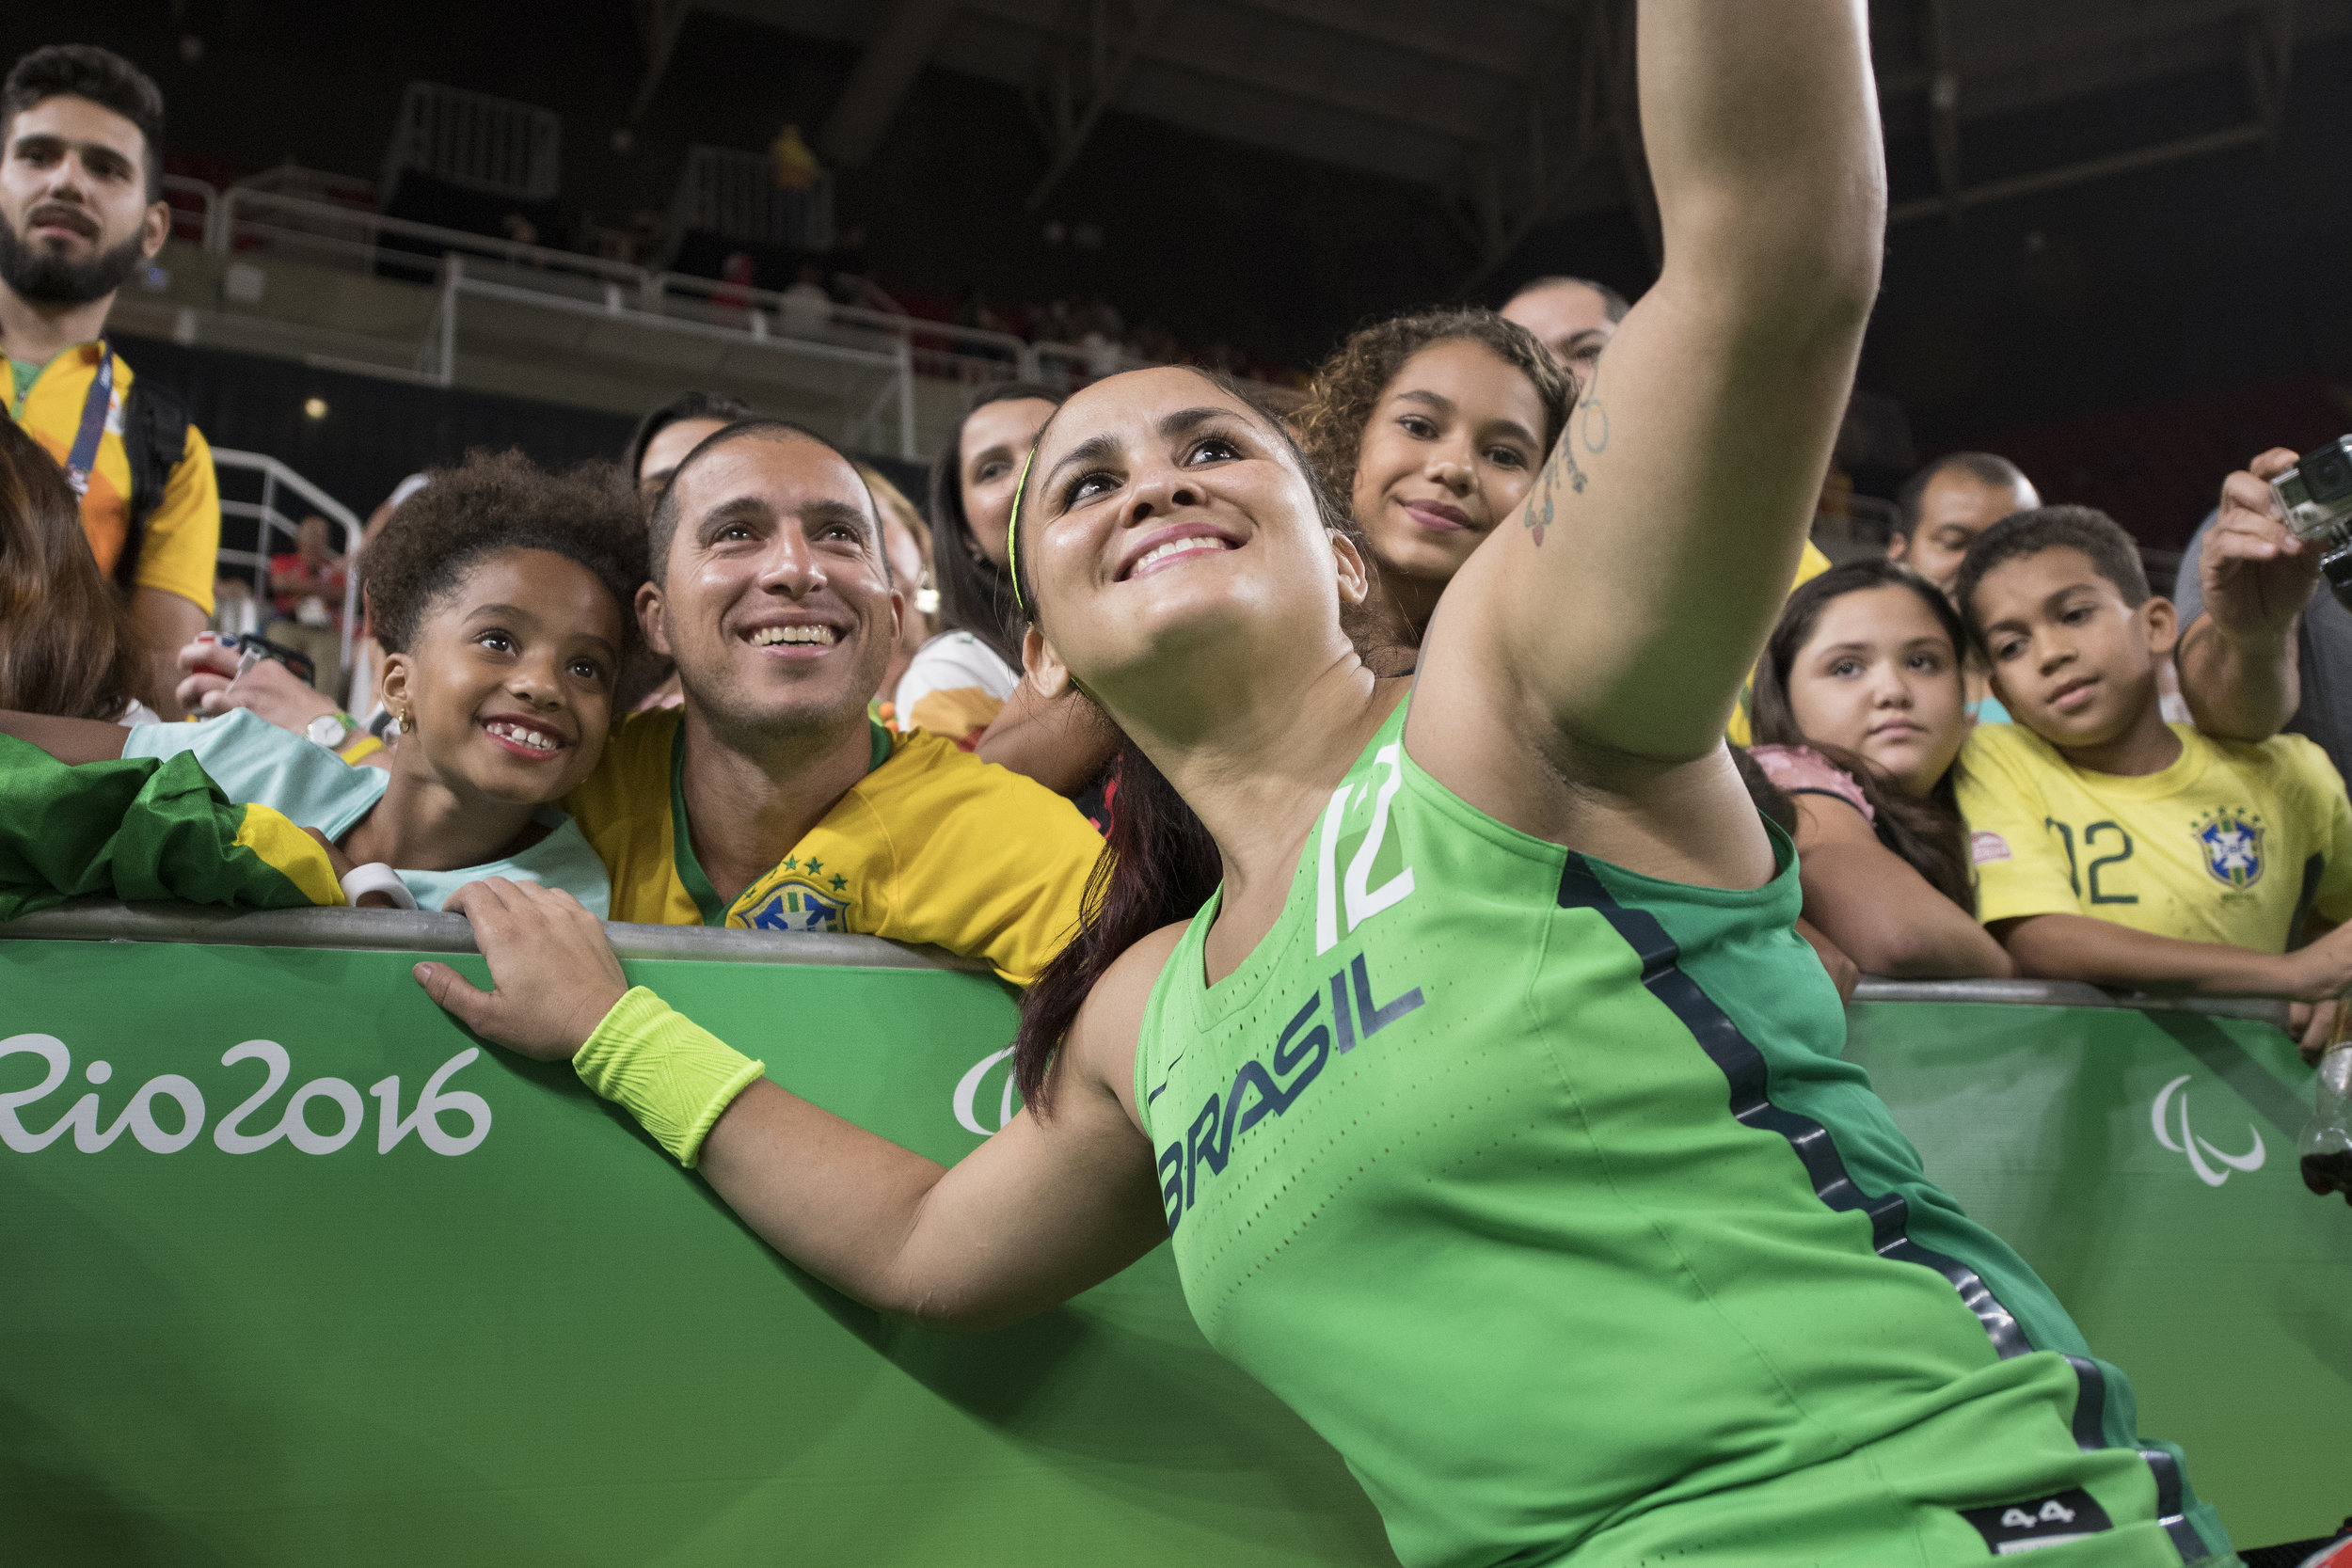 Brazil's Lia Martins takes a selfie with fans after Brazil's game against the U.S. in the women's wheelchair basketball quarter finals at the 2016 Paralympic Games in Rio de Janeiro, Brazil, on Tuesday, Sept. 13, 2016. The U.S. defeated Brazil 66-35.